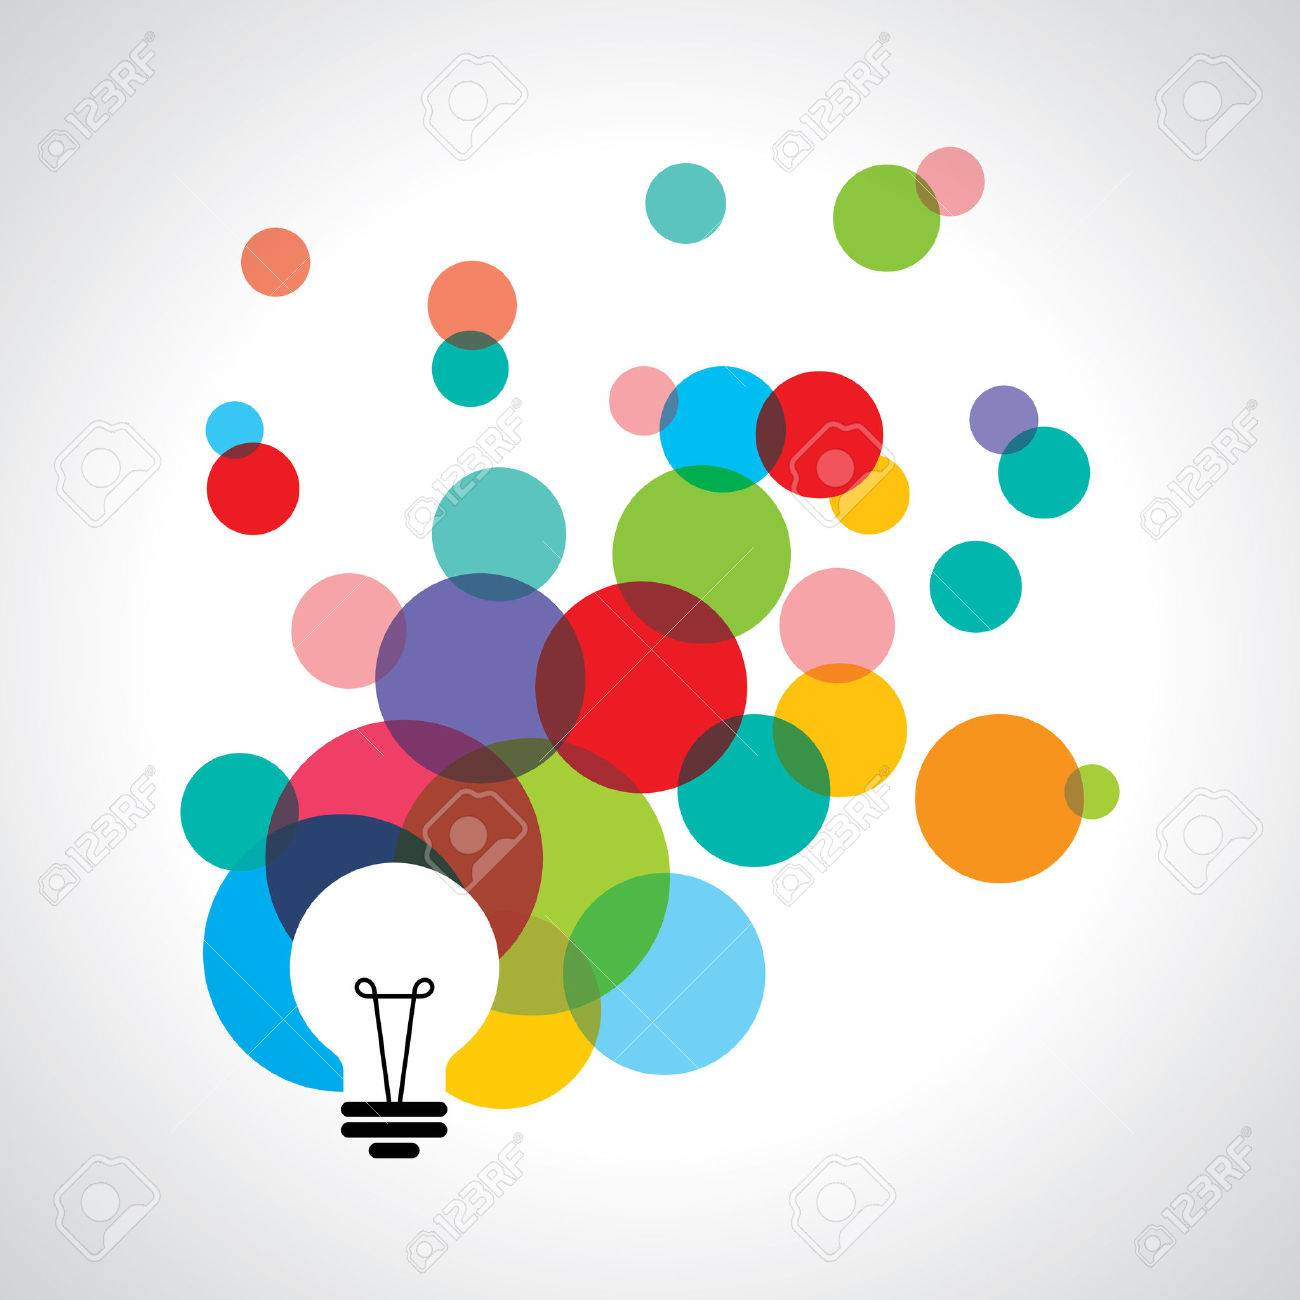 light bulb icons with concept of idea. - 37109768